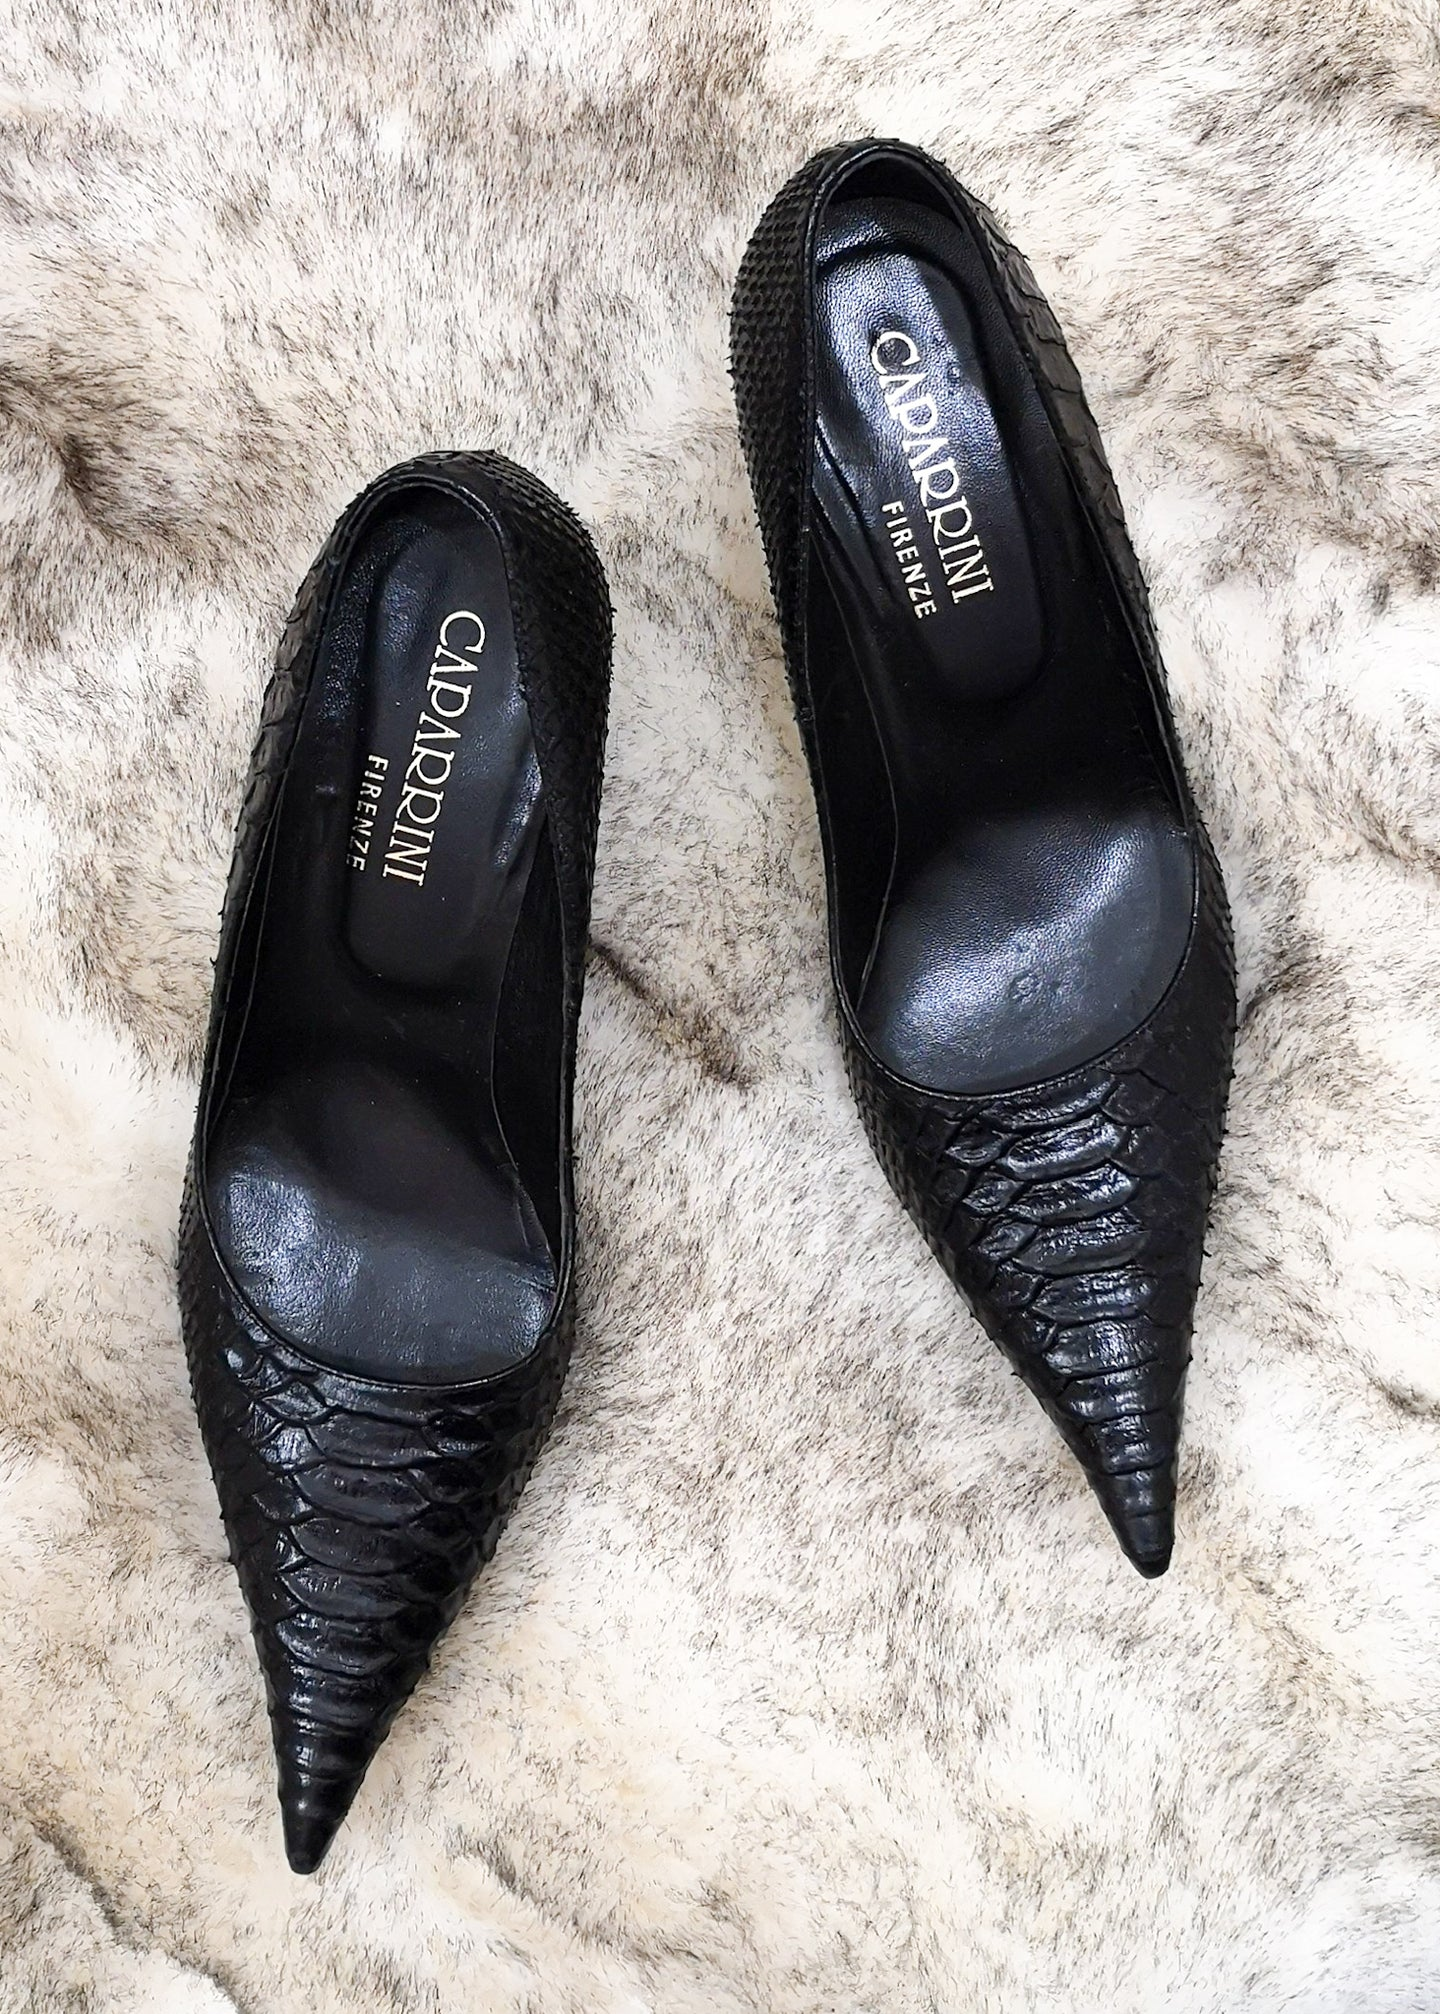 Pointed Toe Pump by Caparrini Firenze